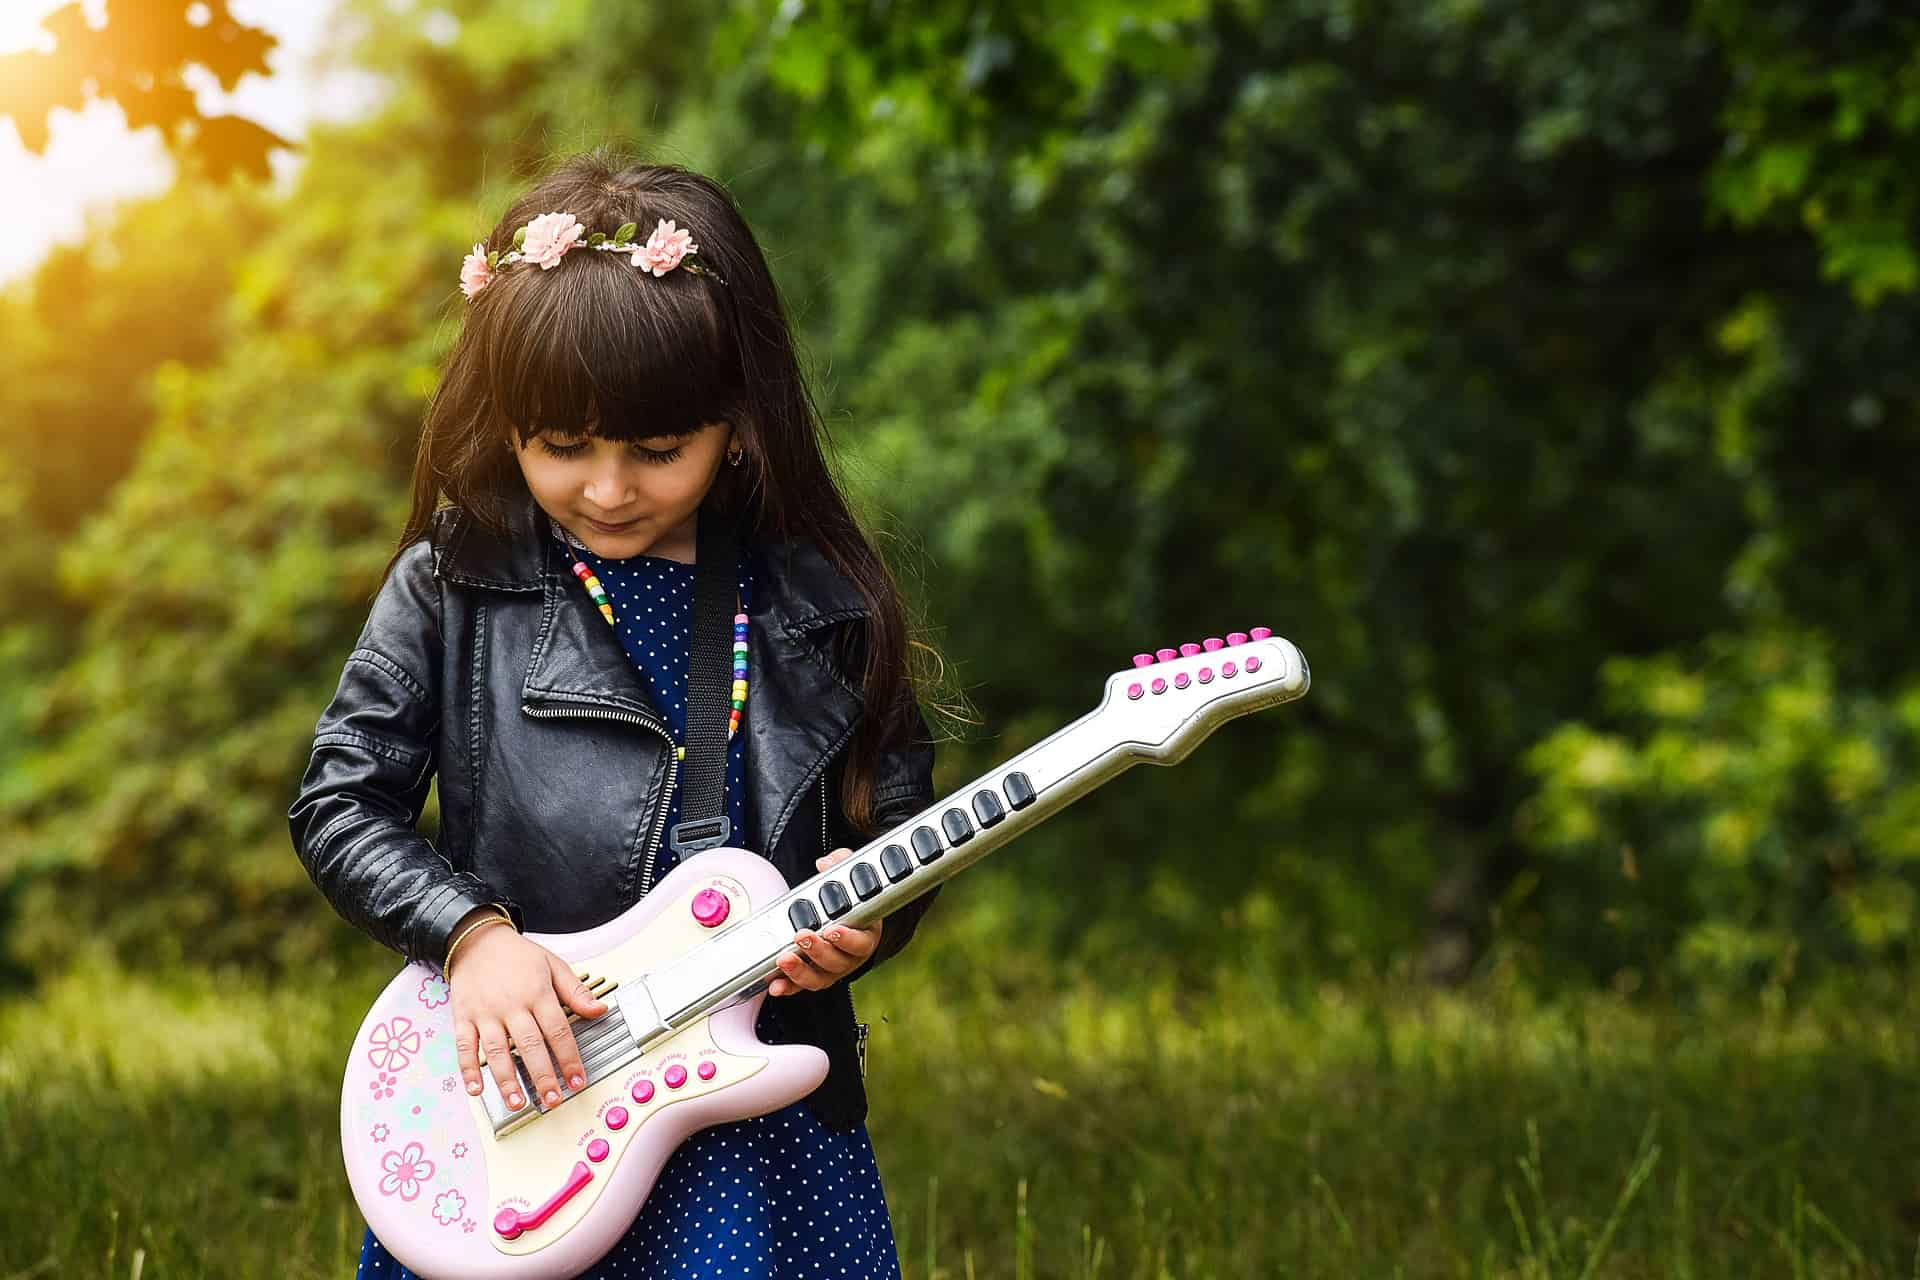 Little girl on a pink guitar